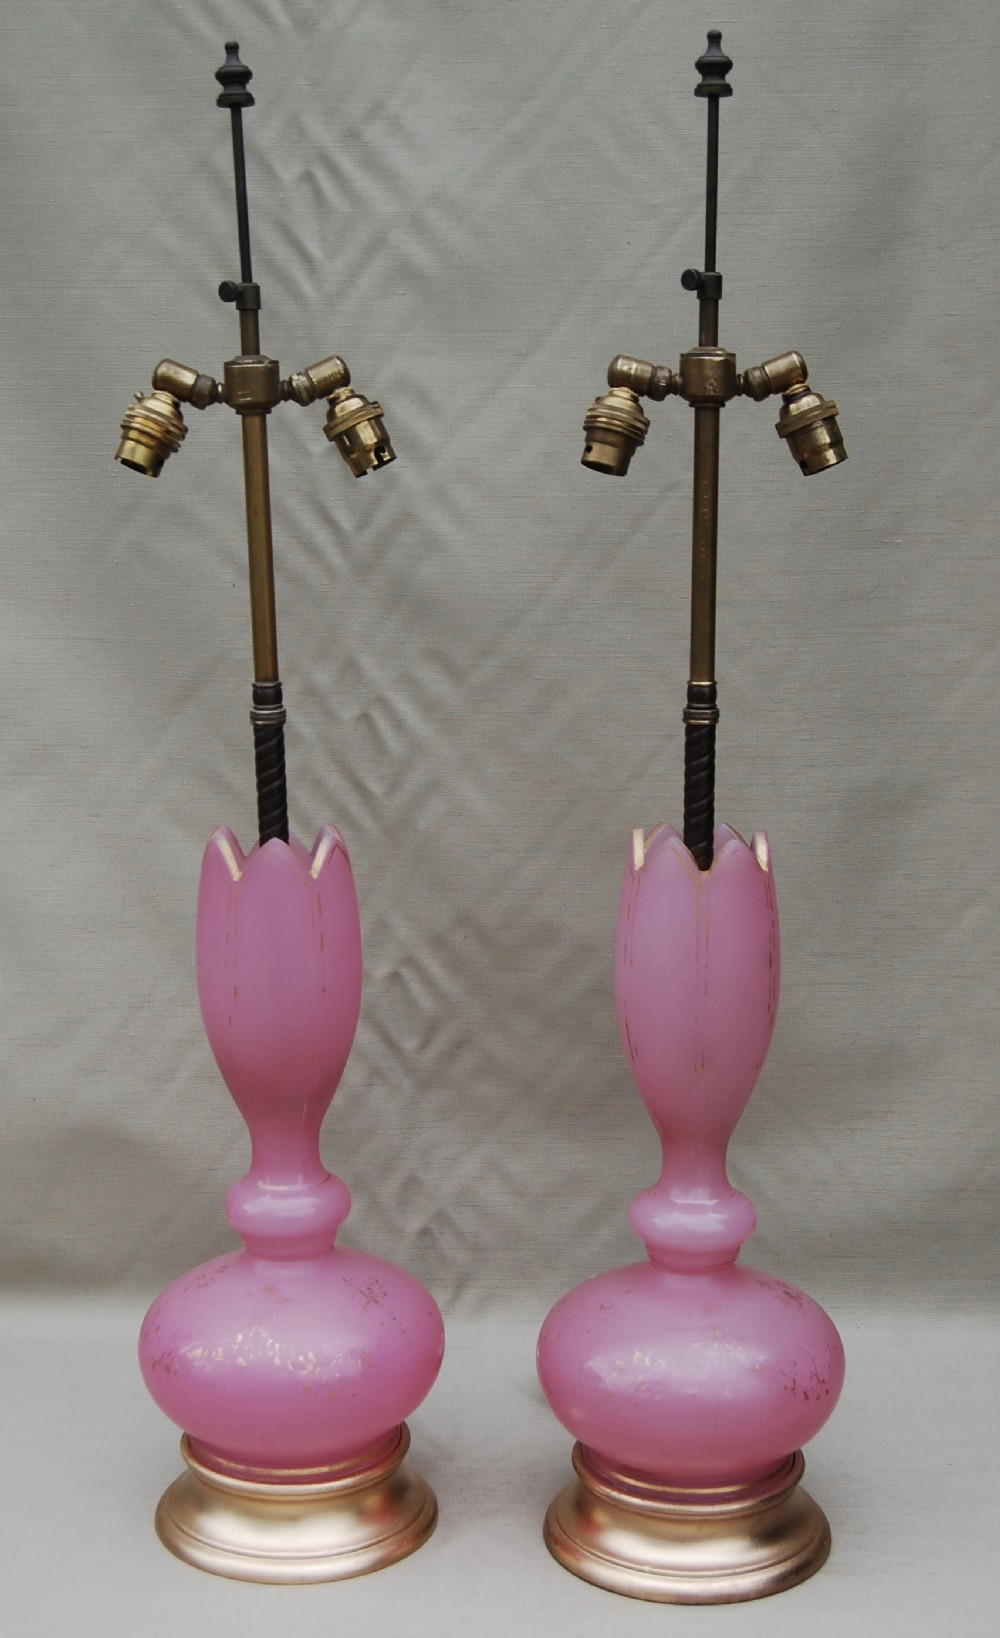 pair of opaline glass lamps with tall brass twinlamp fittings